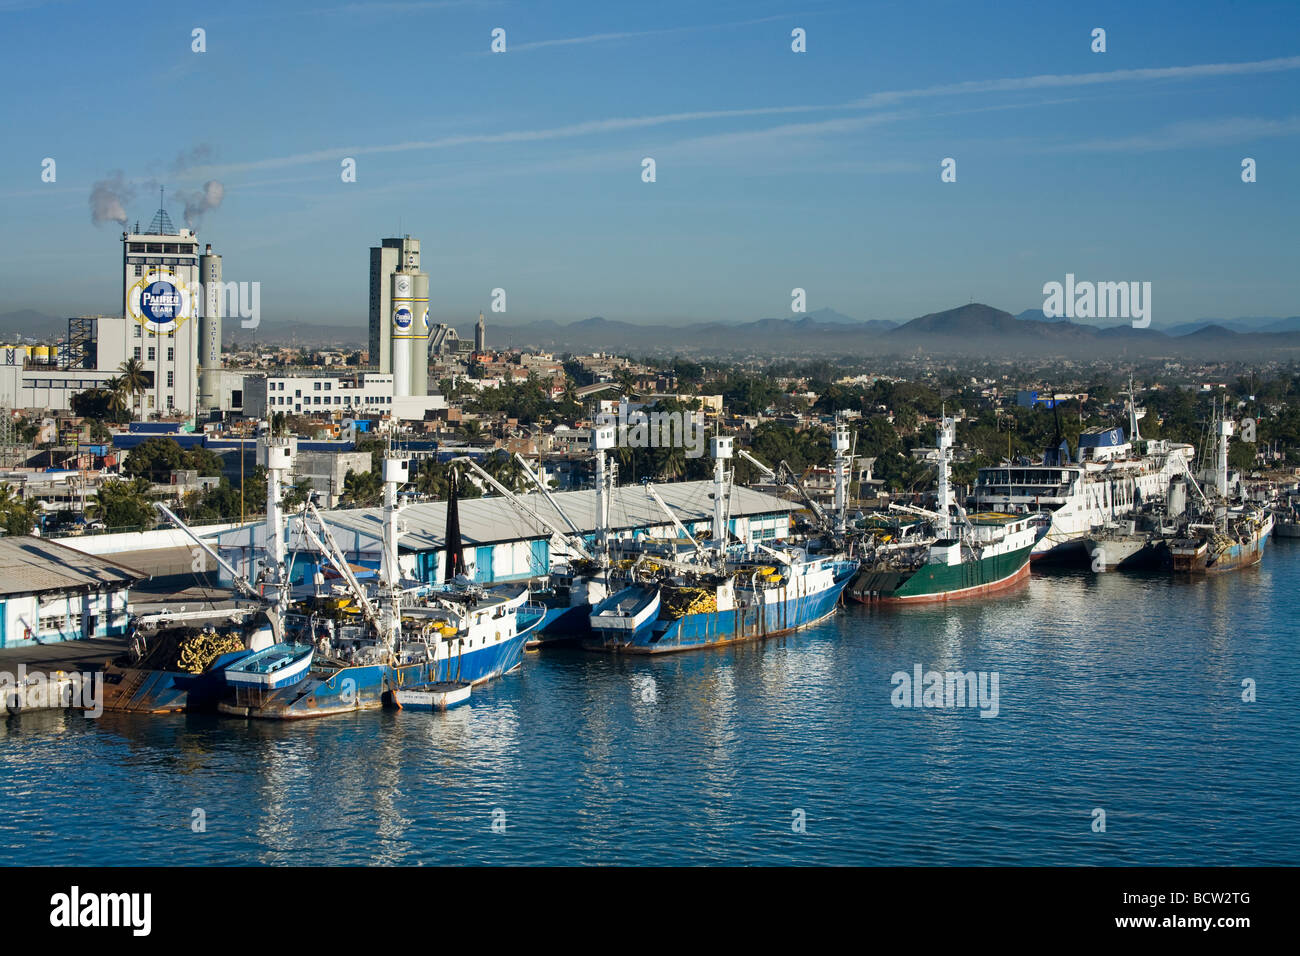 Fishing boats at a dock, Mazatlan, Sinaloa, Mexico - Stock Image